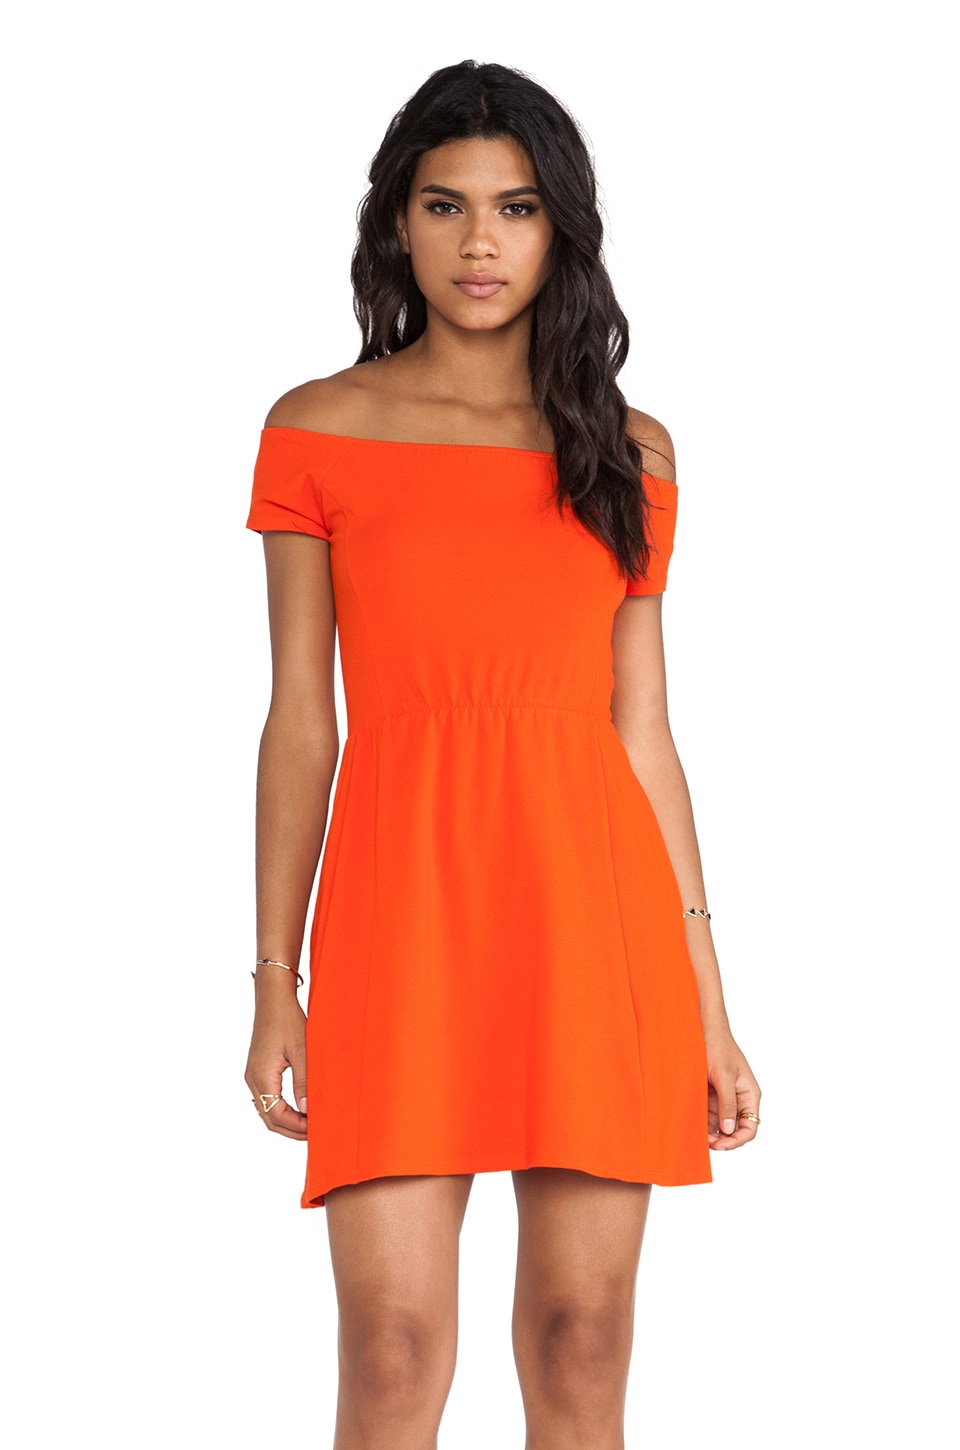 Obey Rockaway Train Dress in Red Orange